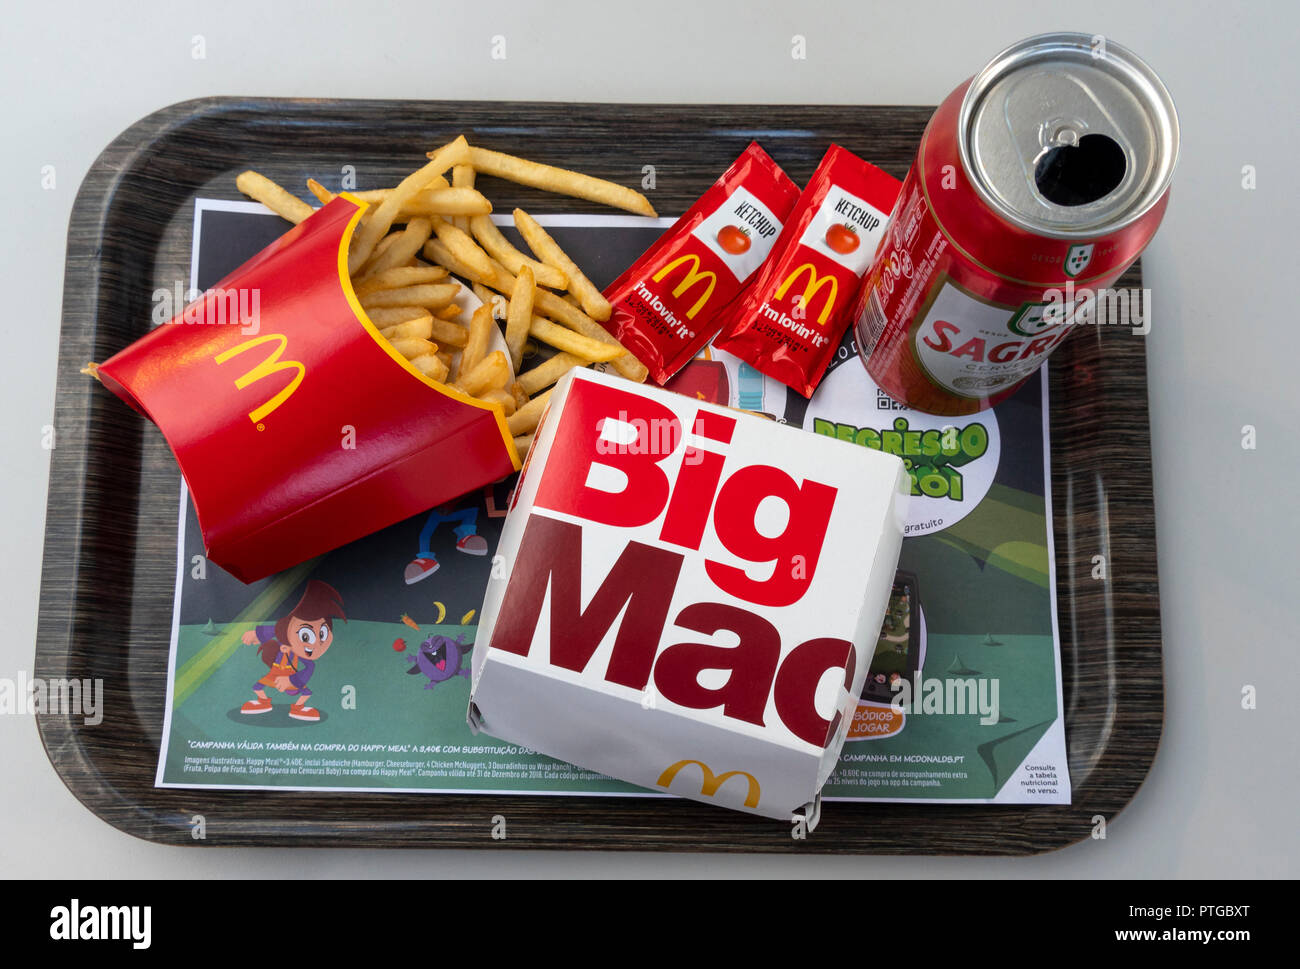 a-big-mac-meal-with-fries-ketchup-packet